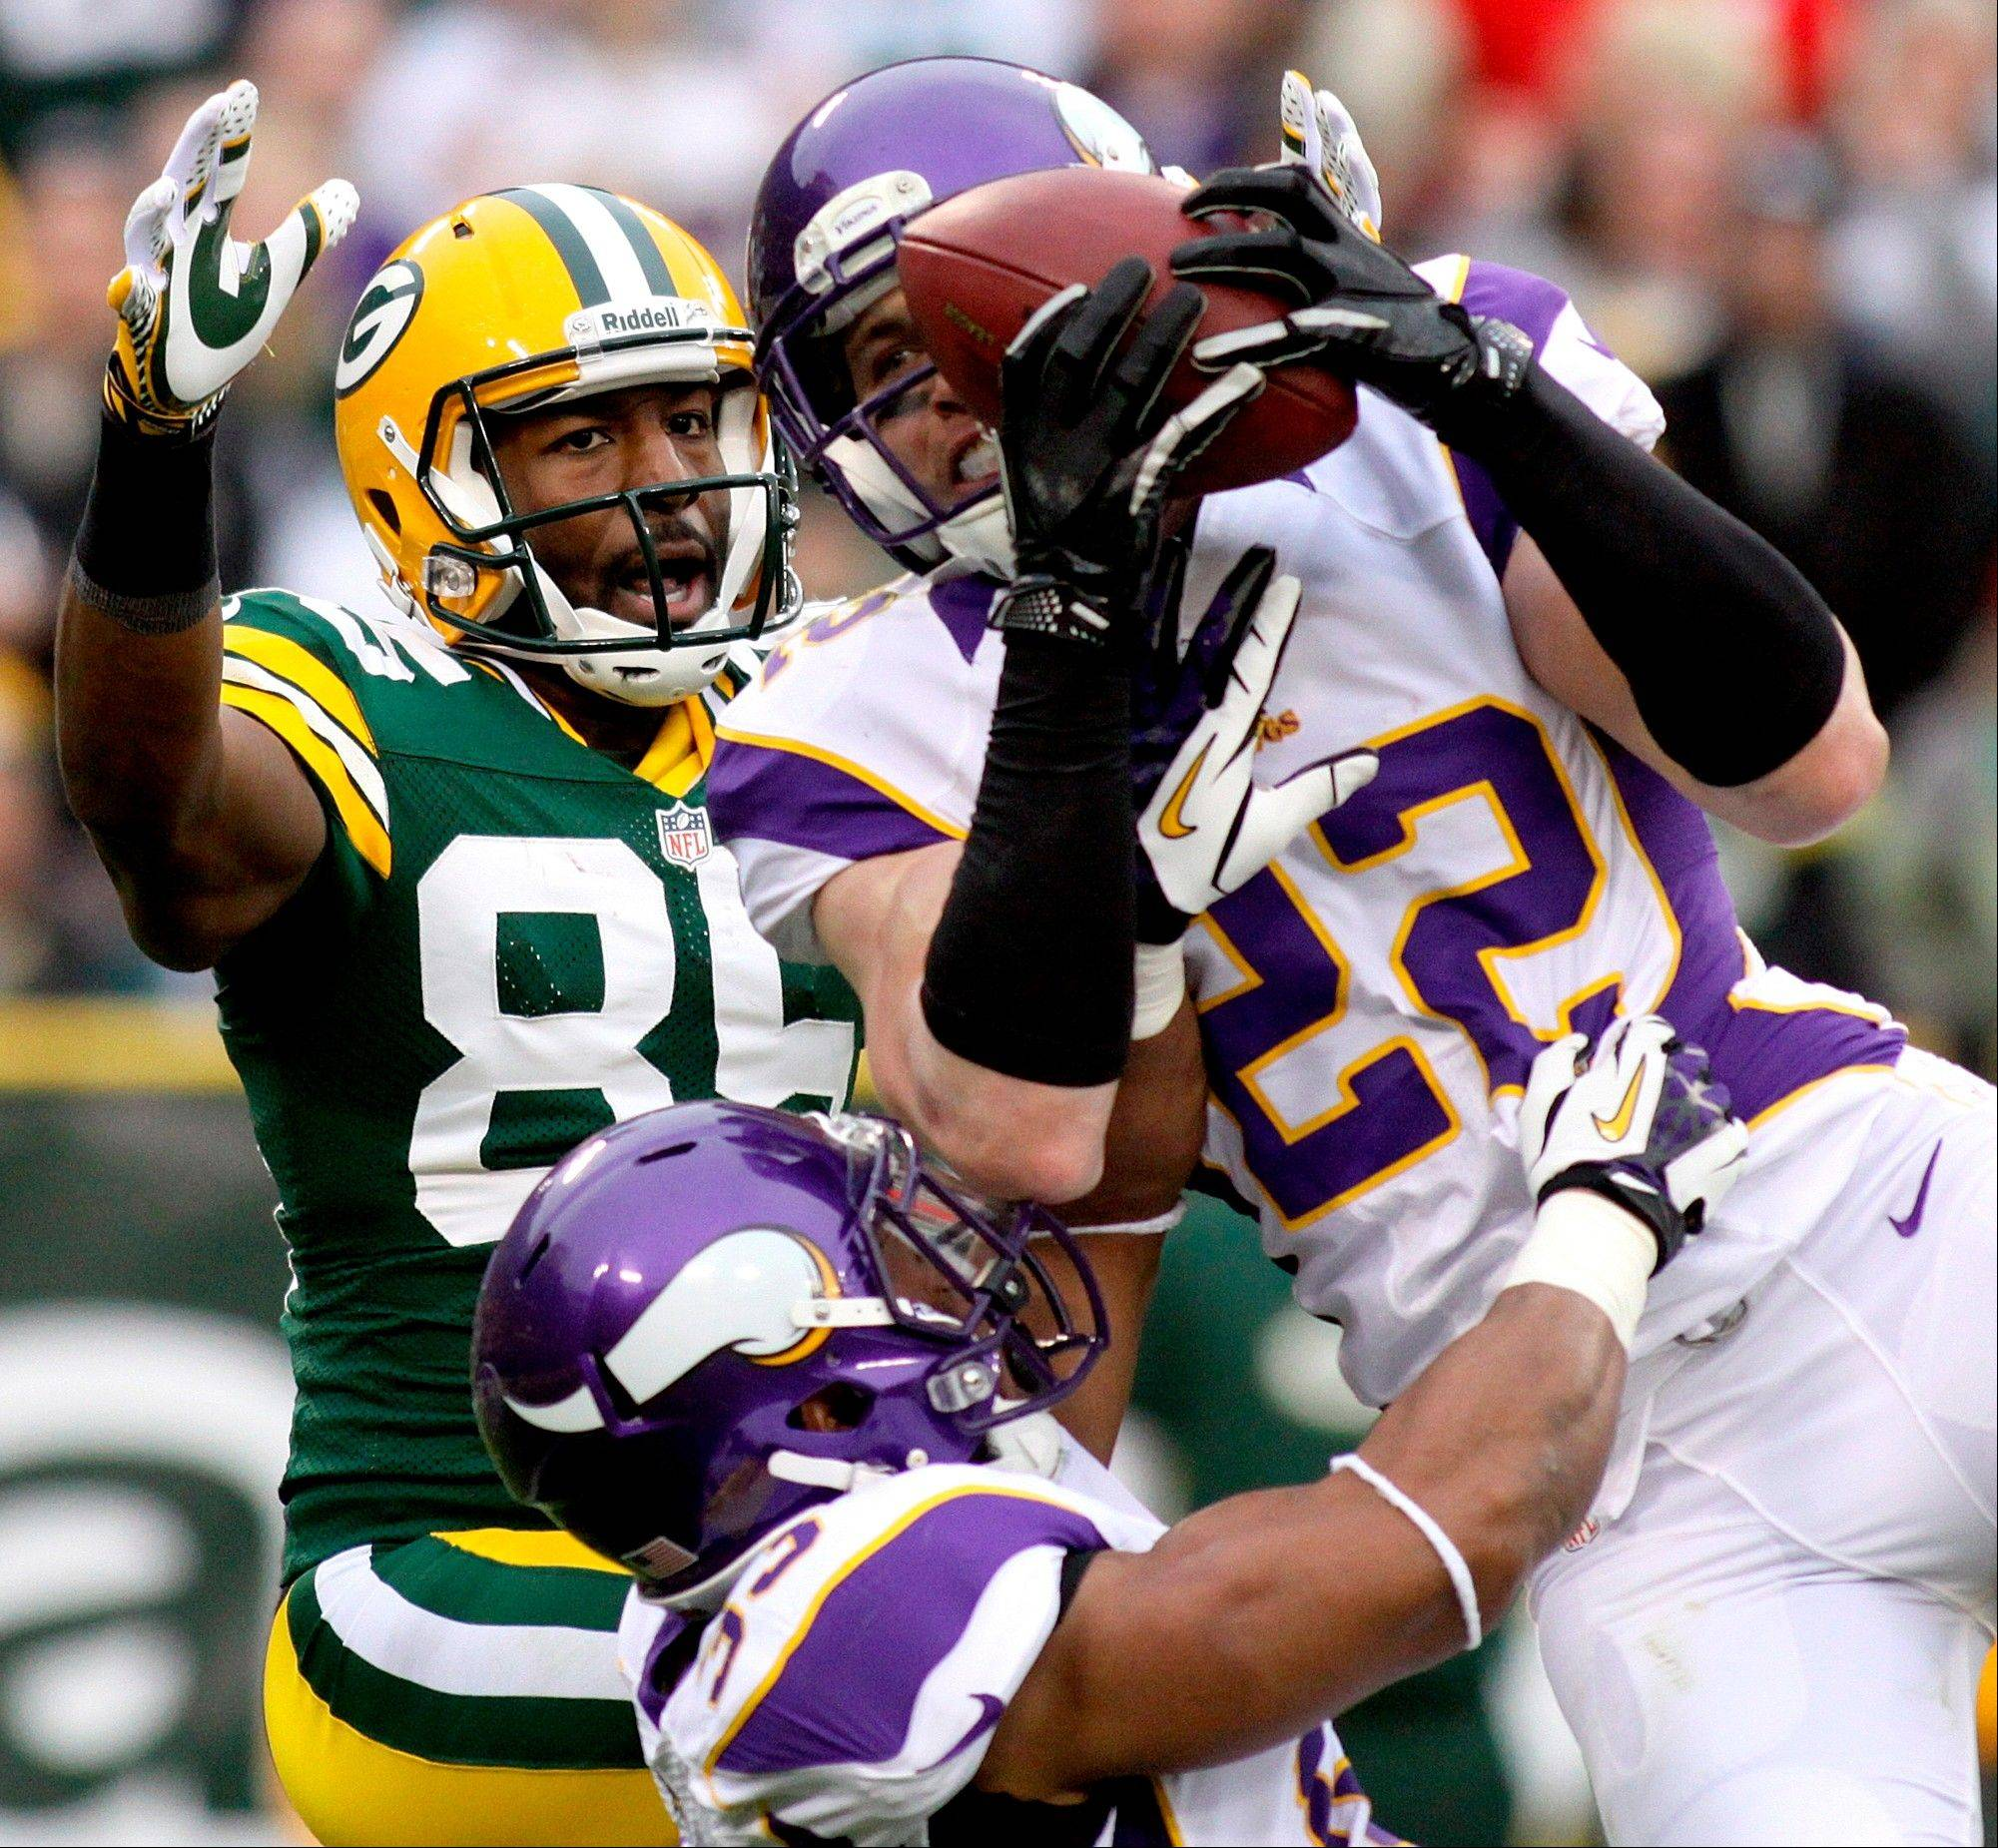 Minnesota Vikings safety Harrison Smith intercepts a pass intended for Green Bay Packers receiver Greg Jennings Sunday during the third quarter. Smith is one of five former Notre Dame players on the roster.